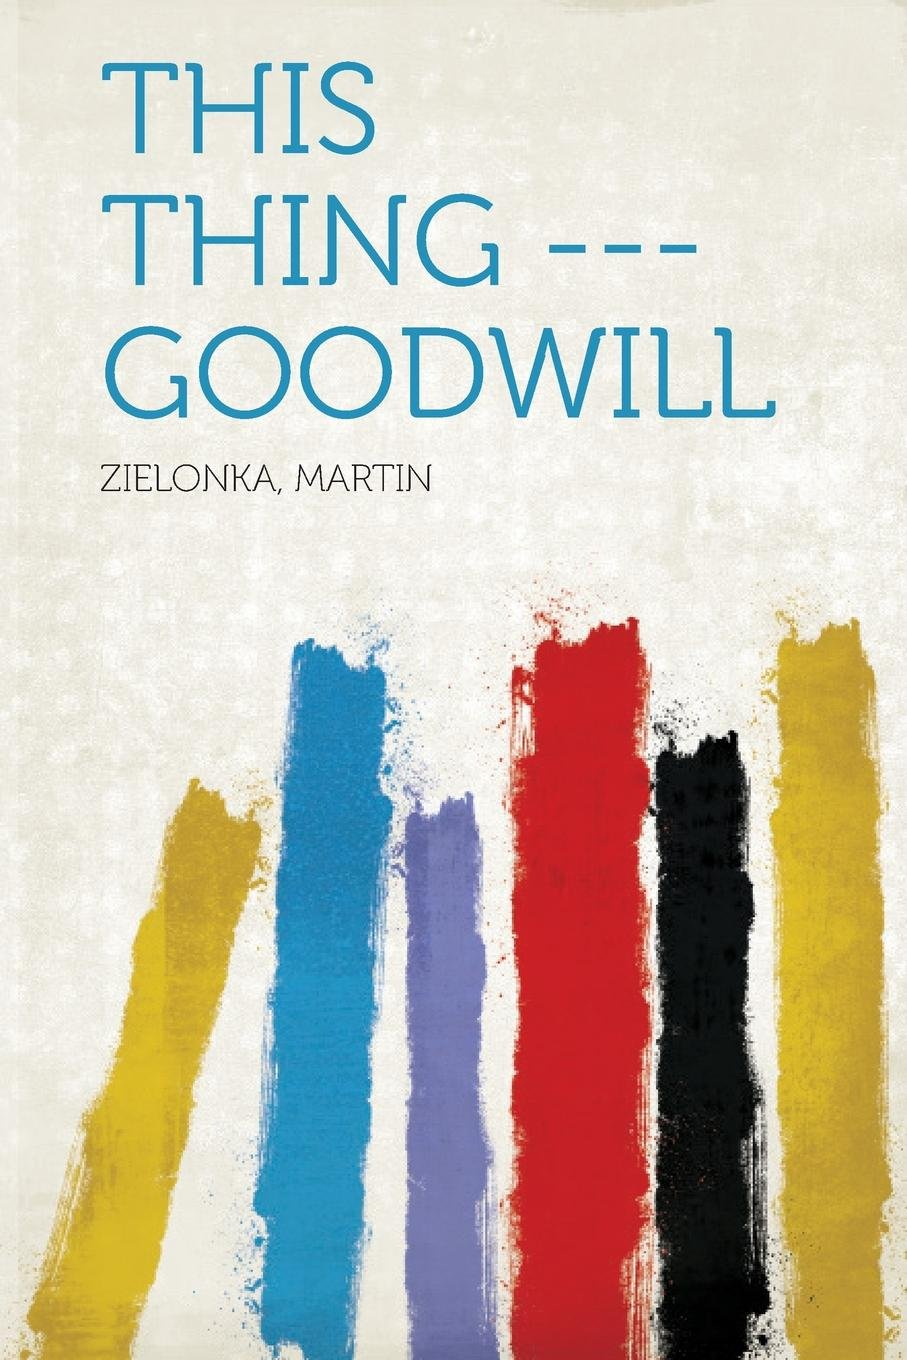 This Thing - Goodwill ebook